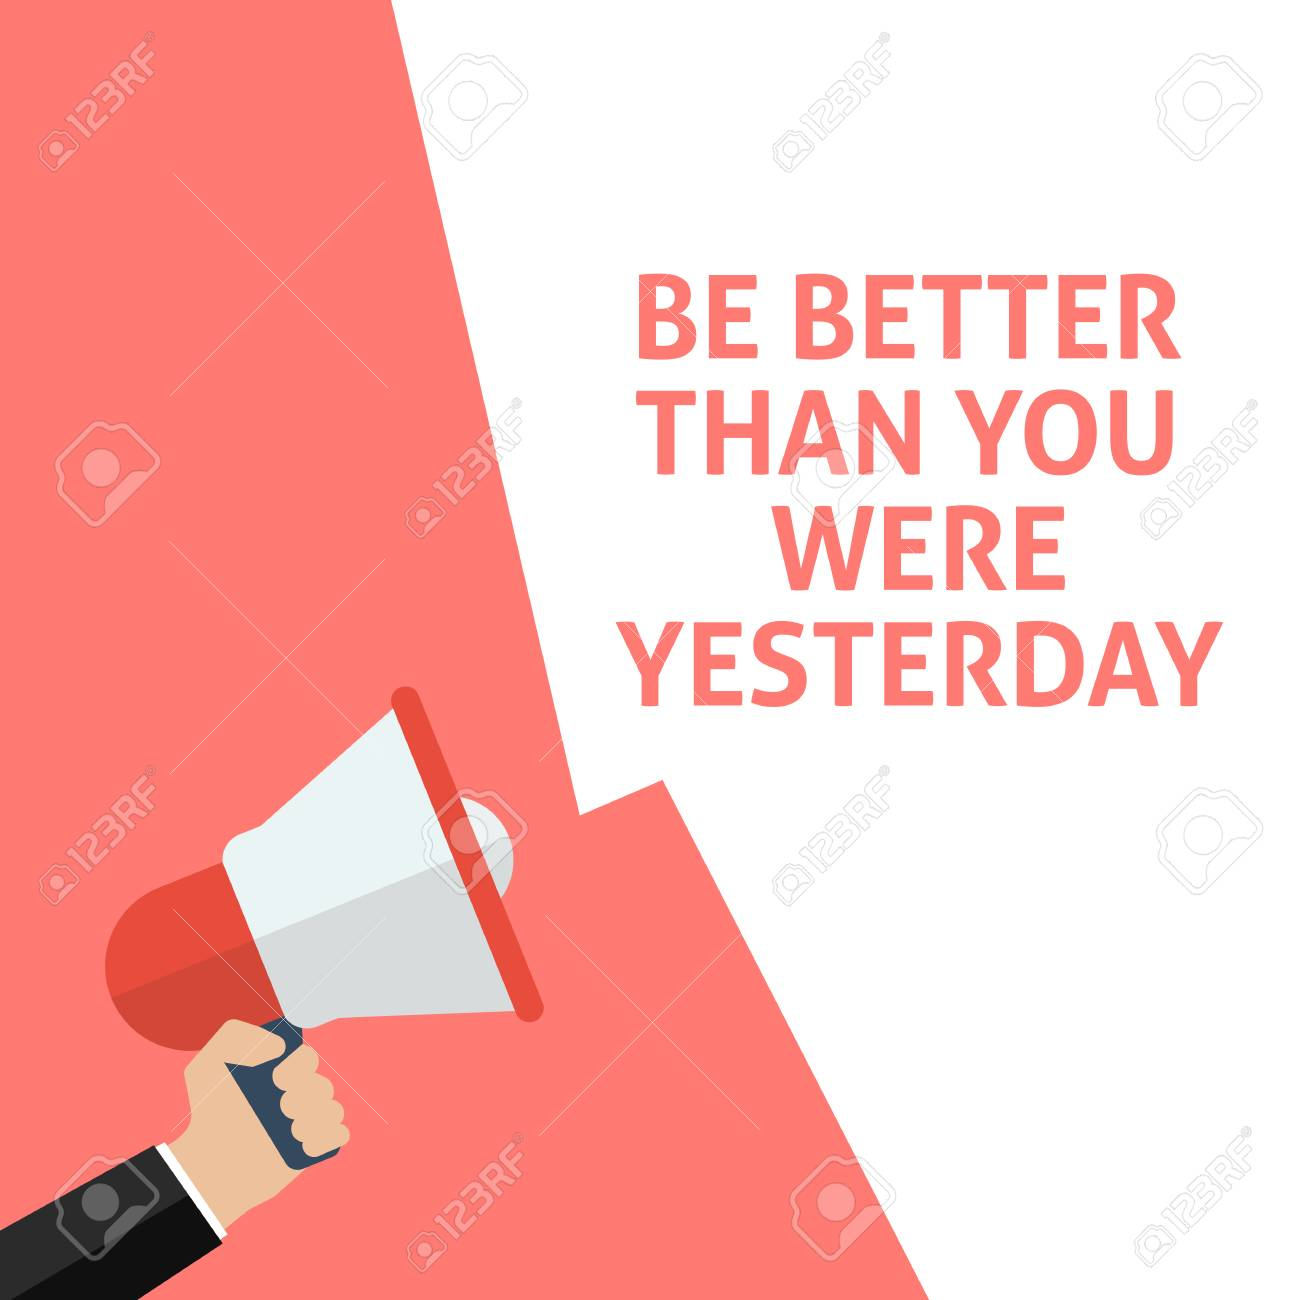 BE BETTER THAN YOU WERE YESTERDAY Announcement. Hand Holding Megaphone With Speech Bubble. Flat Vector Illustration - 110310993